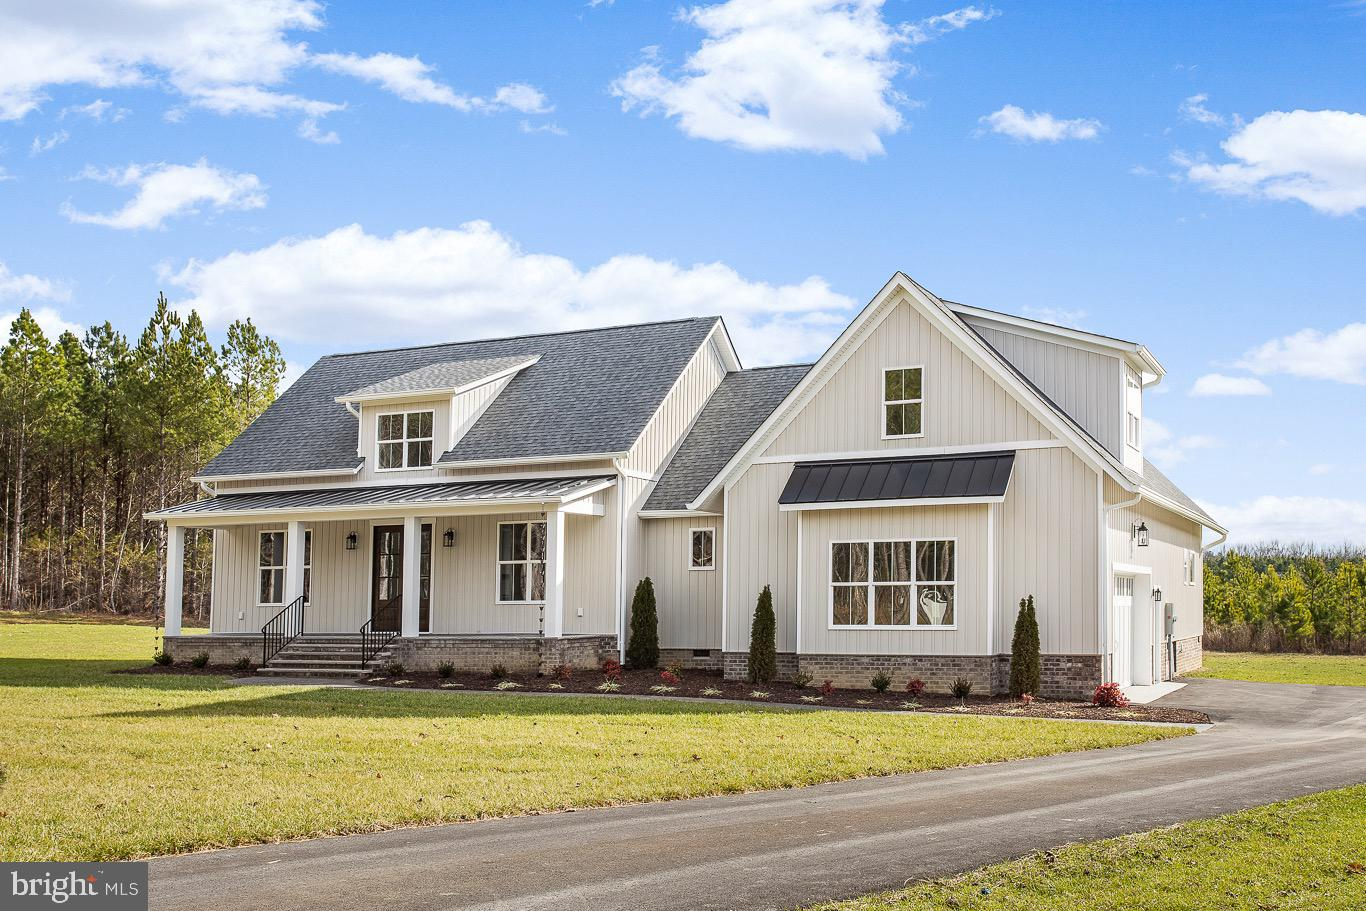 This BEAUTIFUL home is ready for MOVE-IN!! Custom construction by Deerfield Homes on 1.1 acres in De